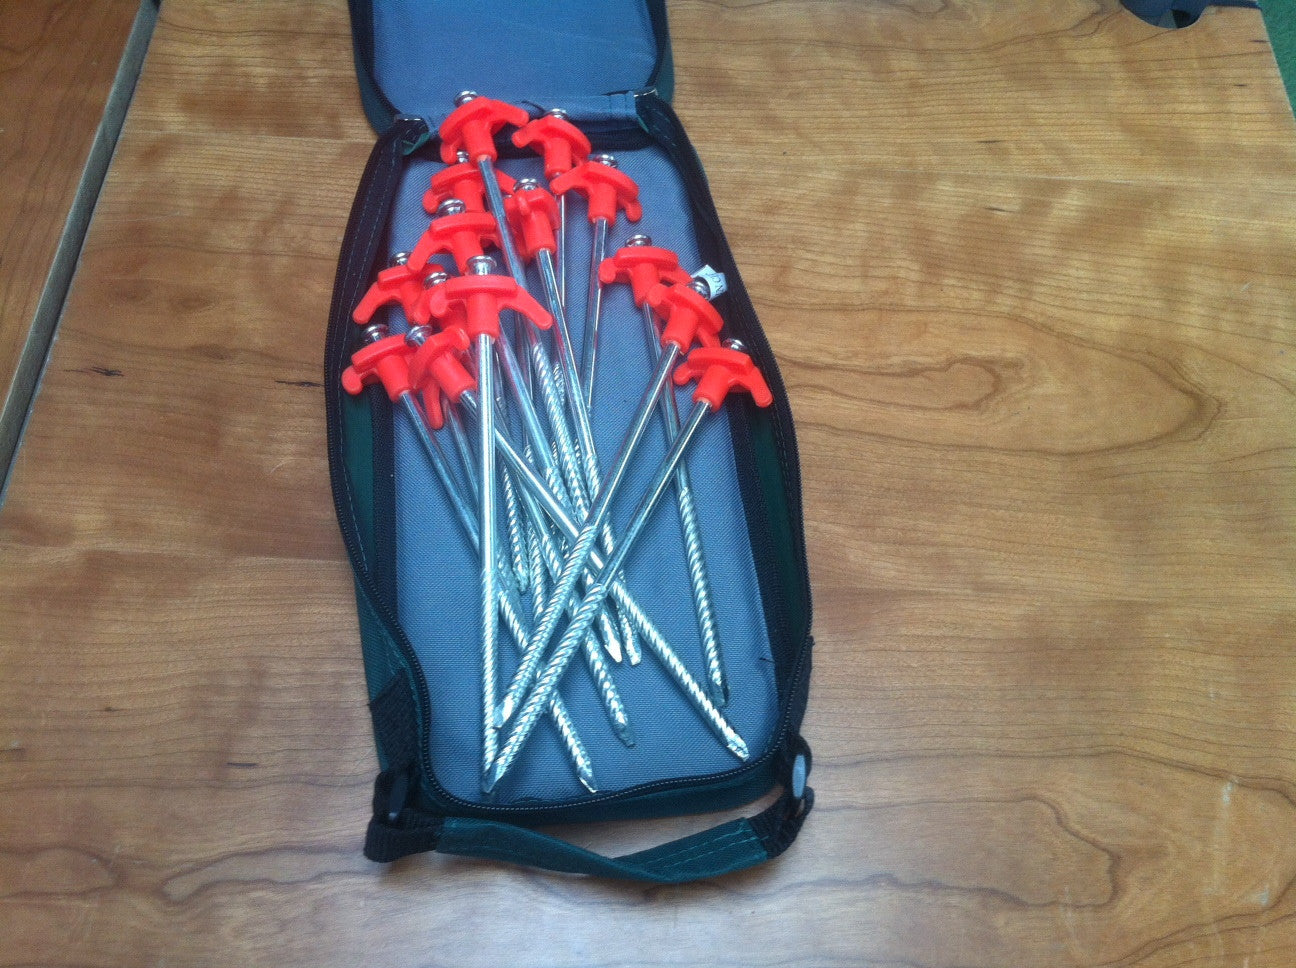 Pyramid Rock Peg and Hammer Kit 15 Hard Ground Pegs With Free Hammer